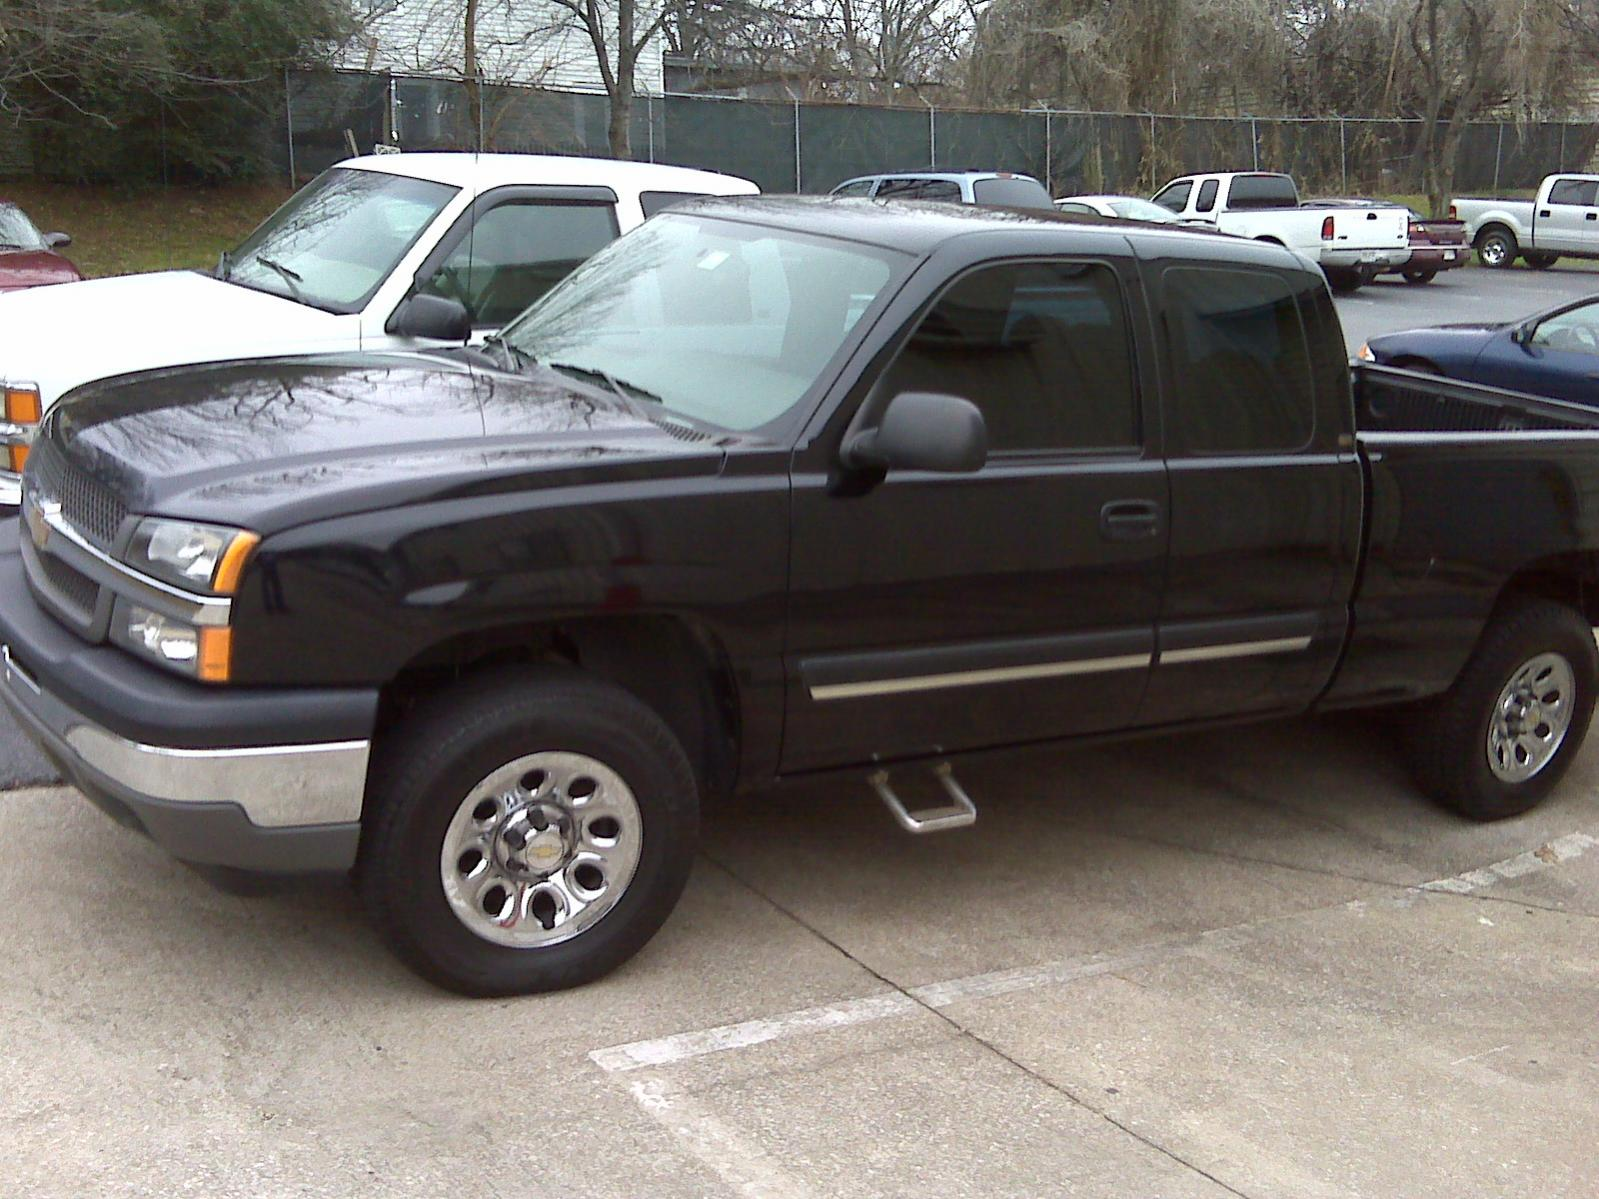 should i buy this truck?-img00030.jpg